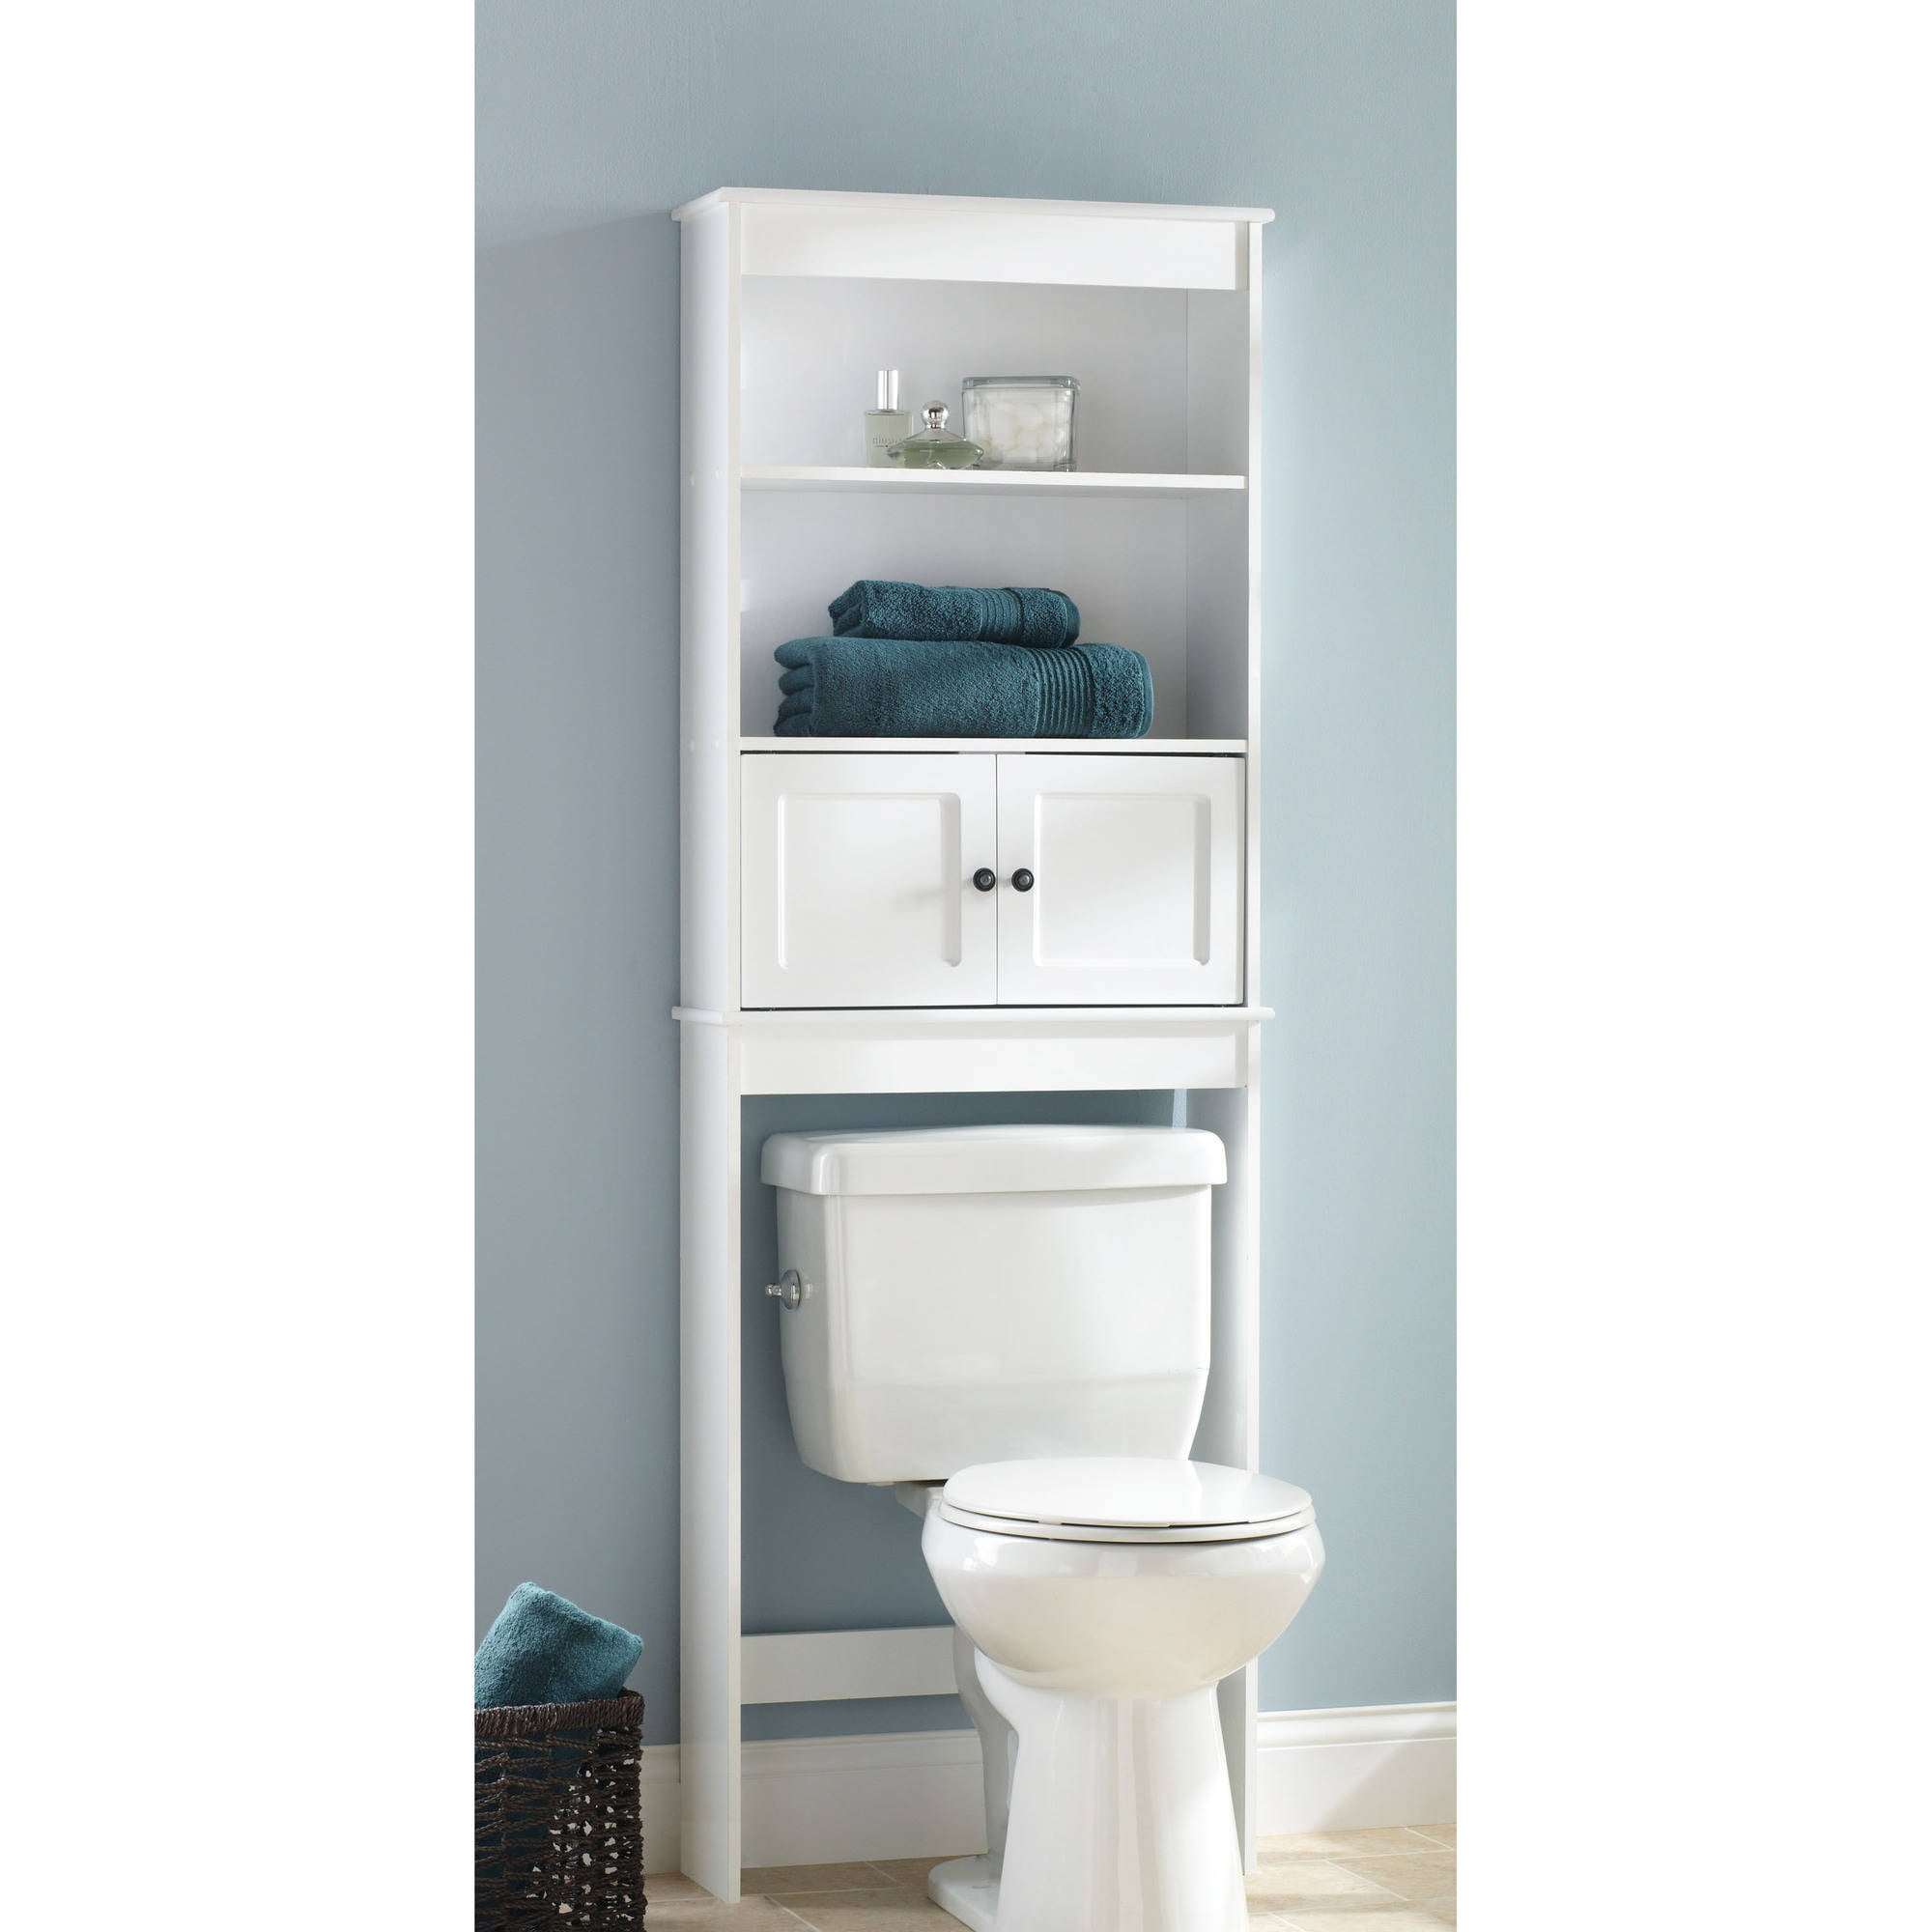 Walmart bathroom storage - Walmart Bathroom Storage 5